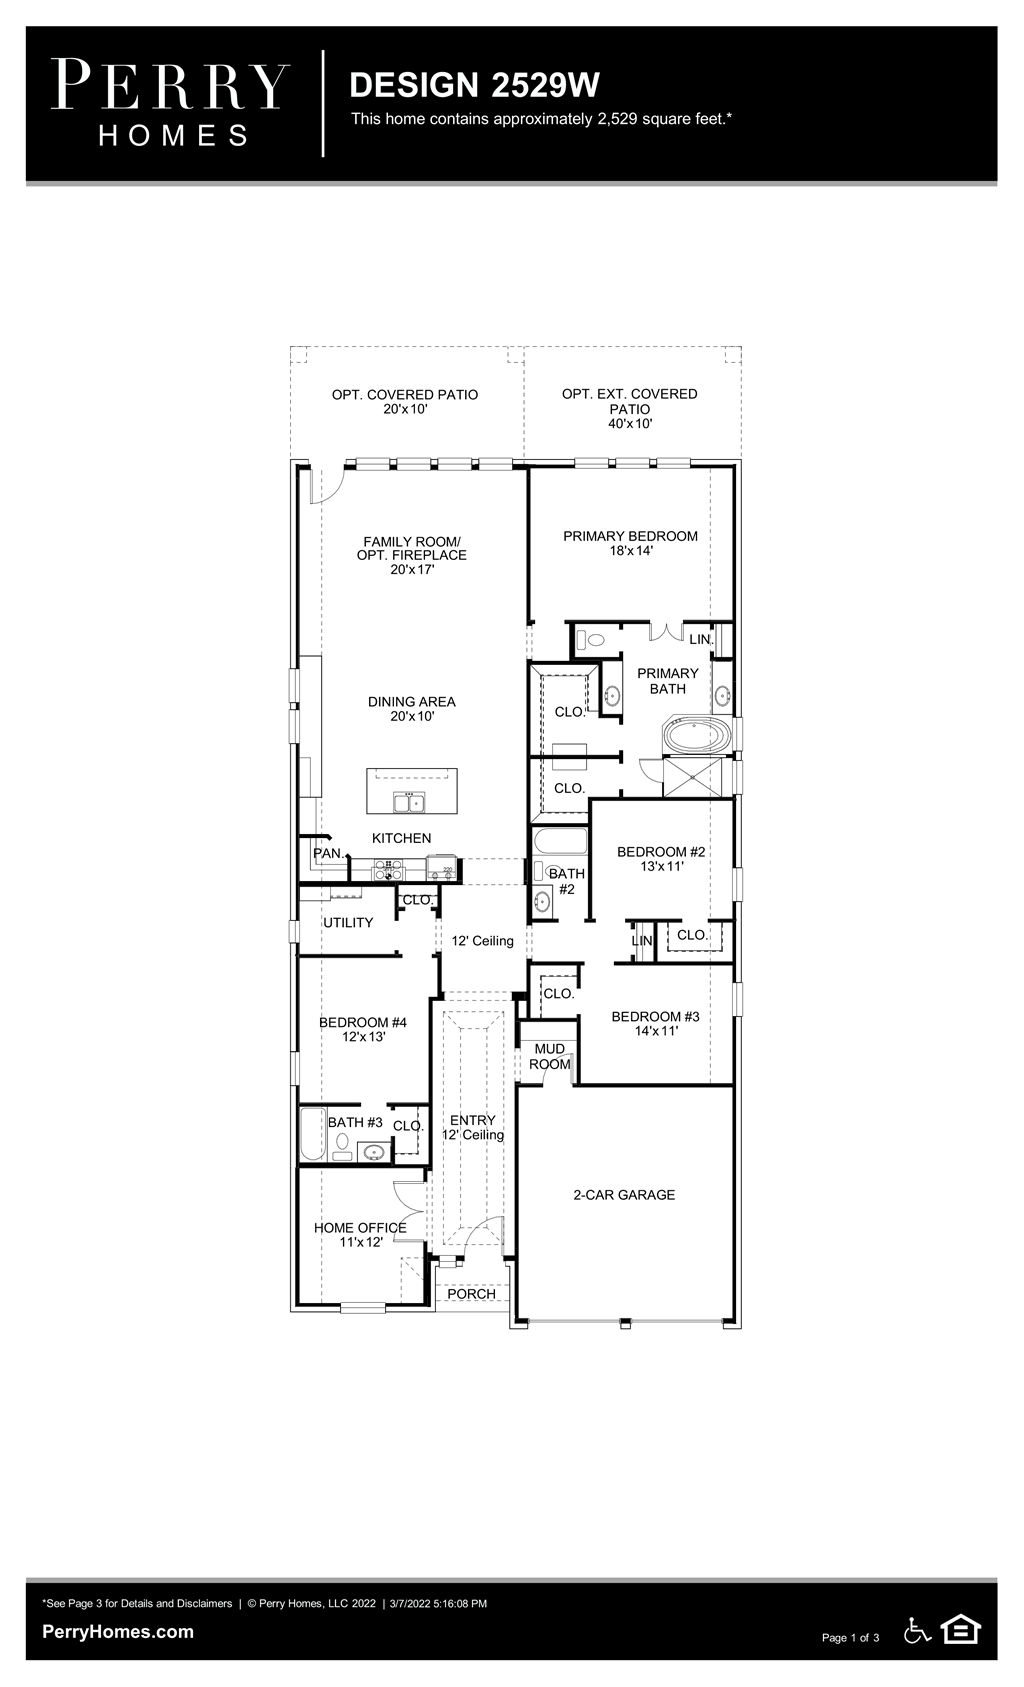 Floor Plan for 2529W